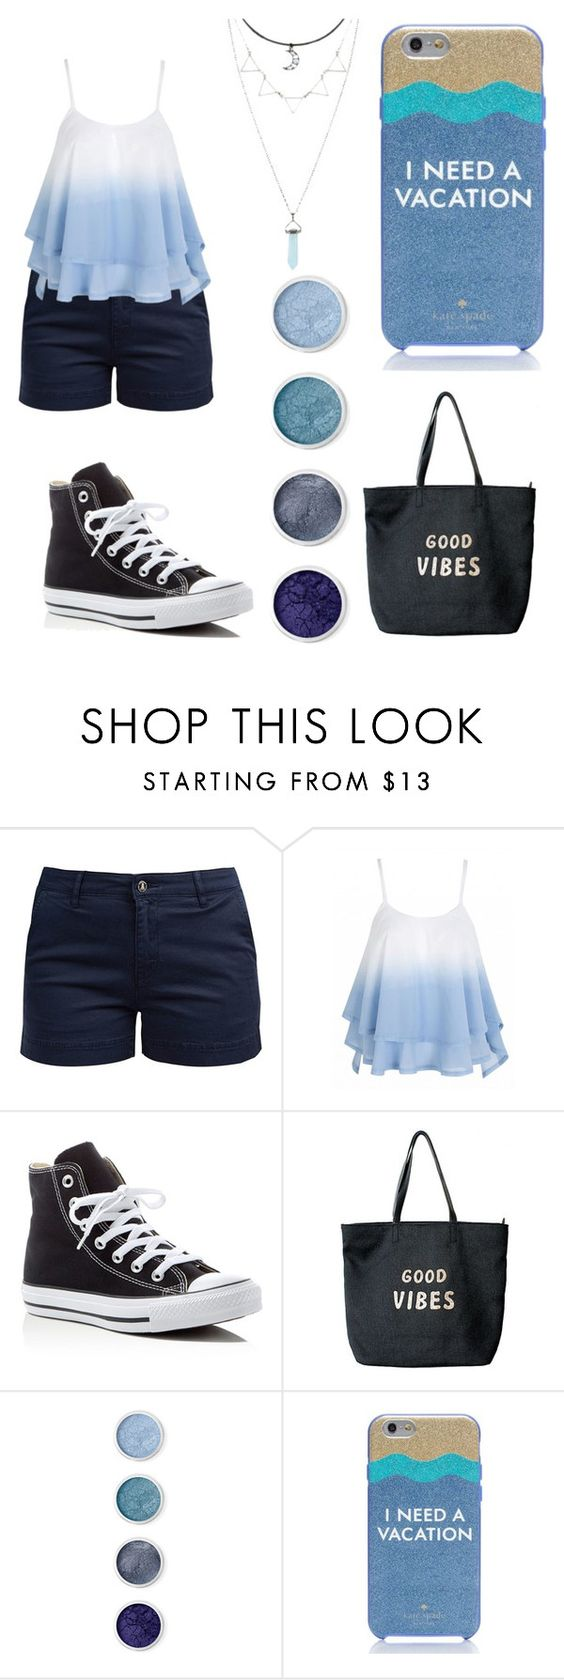 """""""Feeling Blue"""" by lindzaylove ❤ liked on Polyvore featuring Barbour, Converse, Venus, Terre Mère and Kate Spade"""